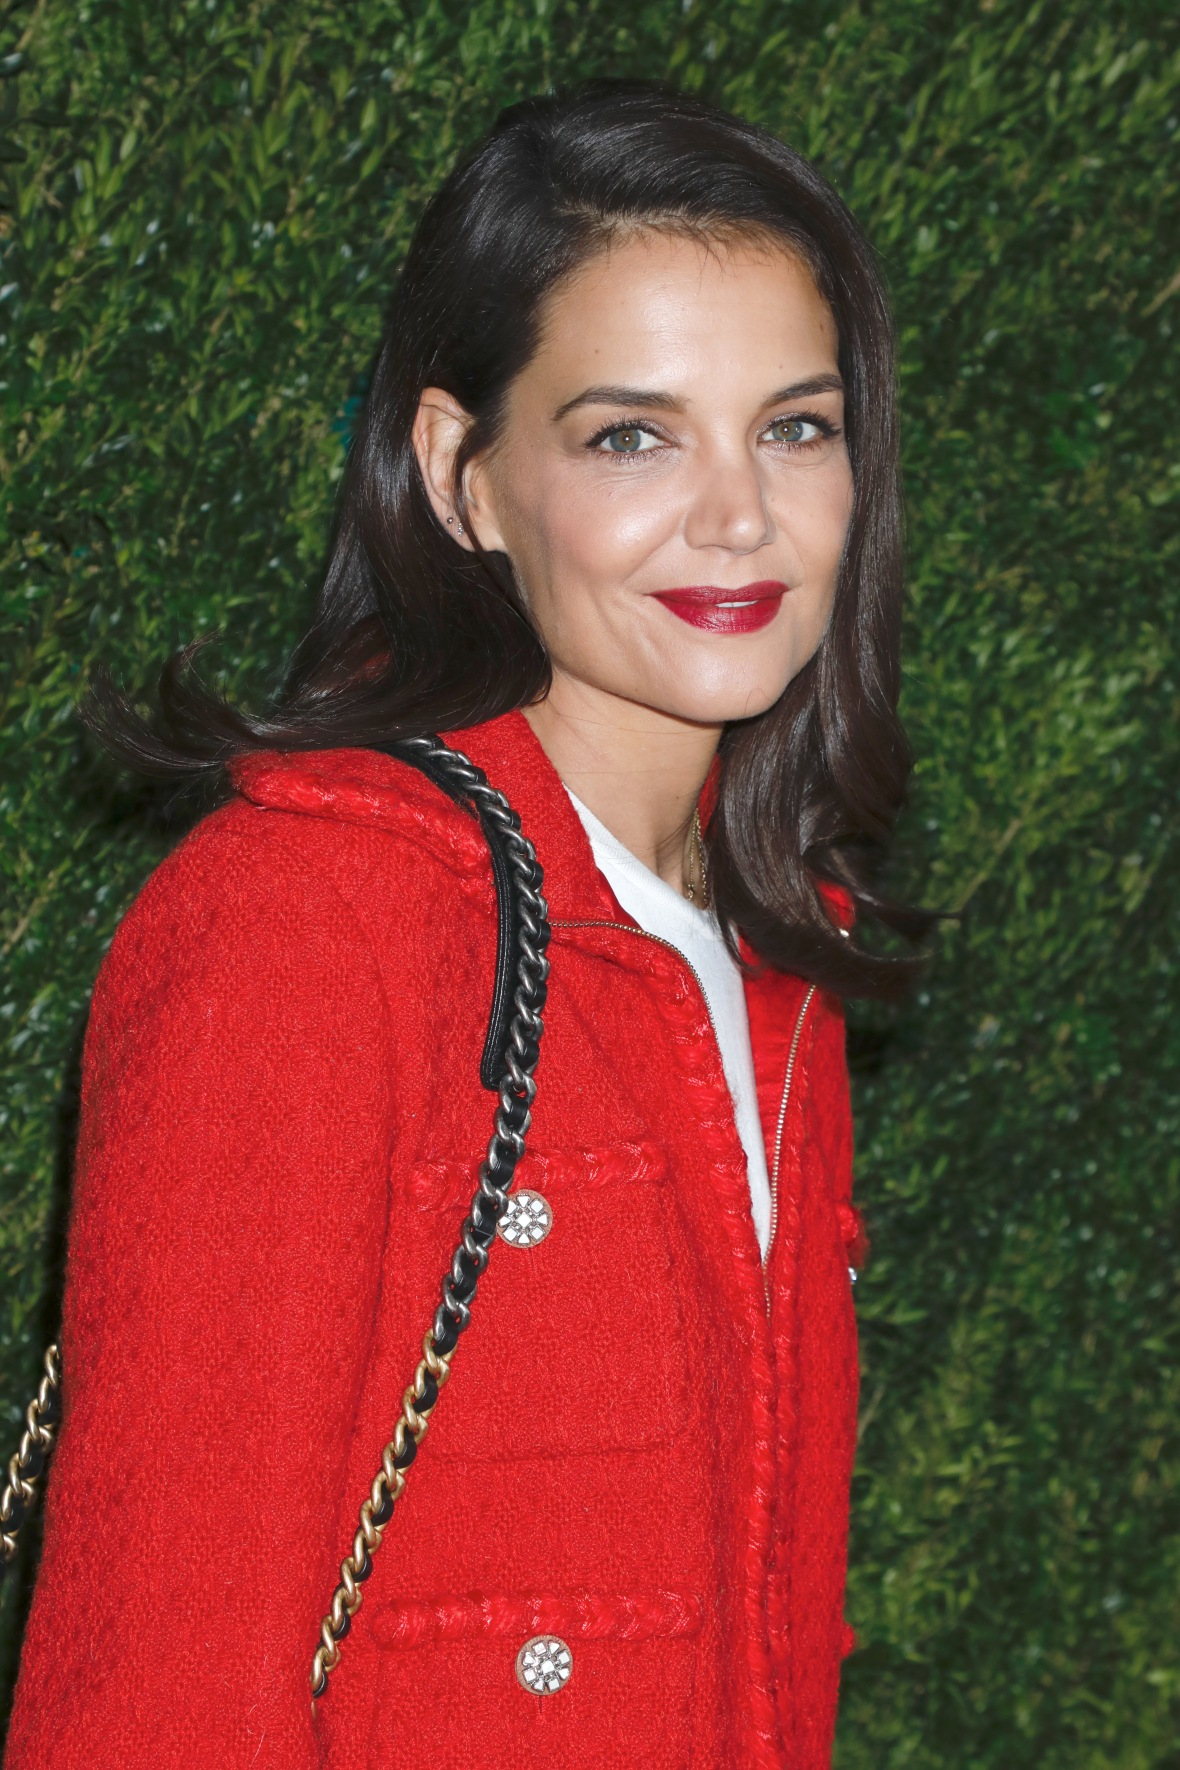 Katie Holmes Wears Stylish Red Jacket